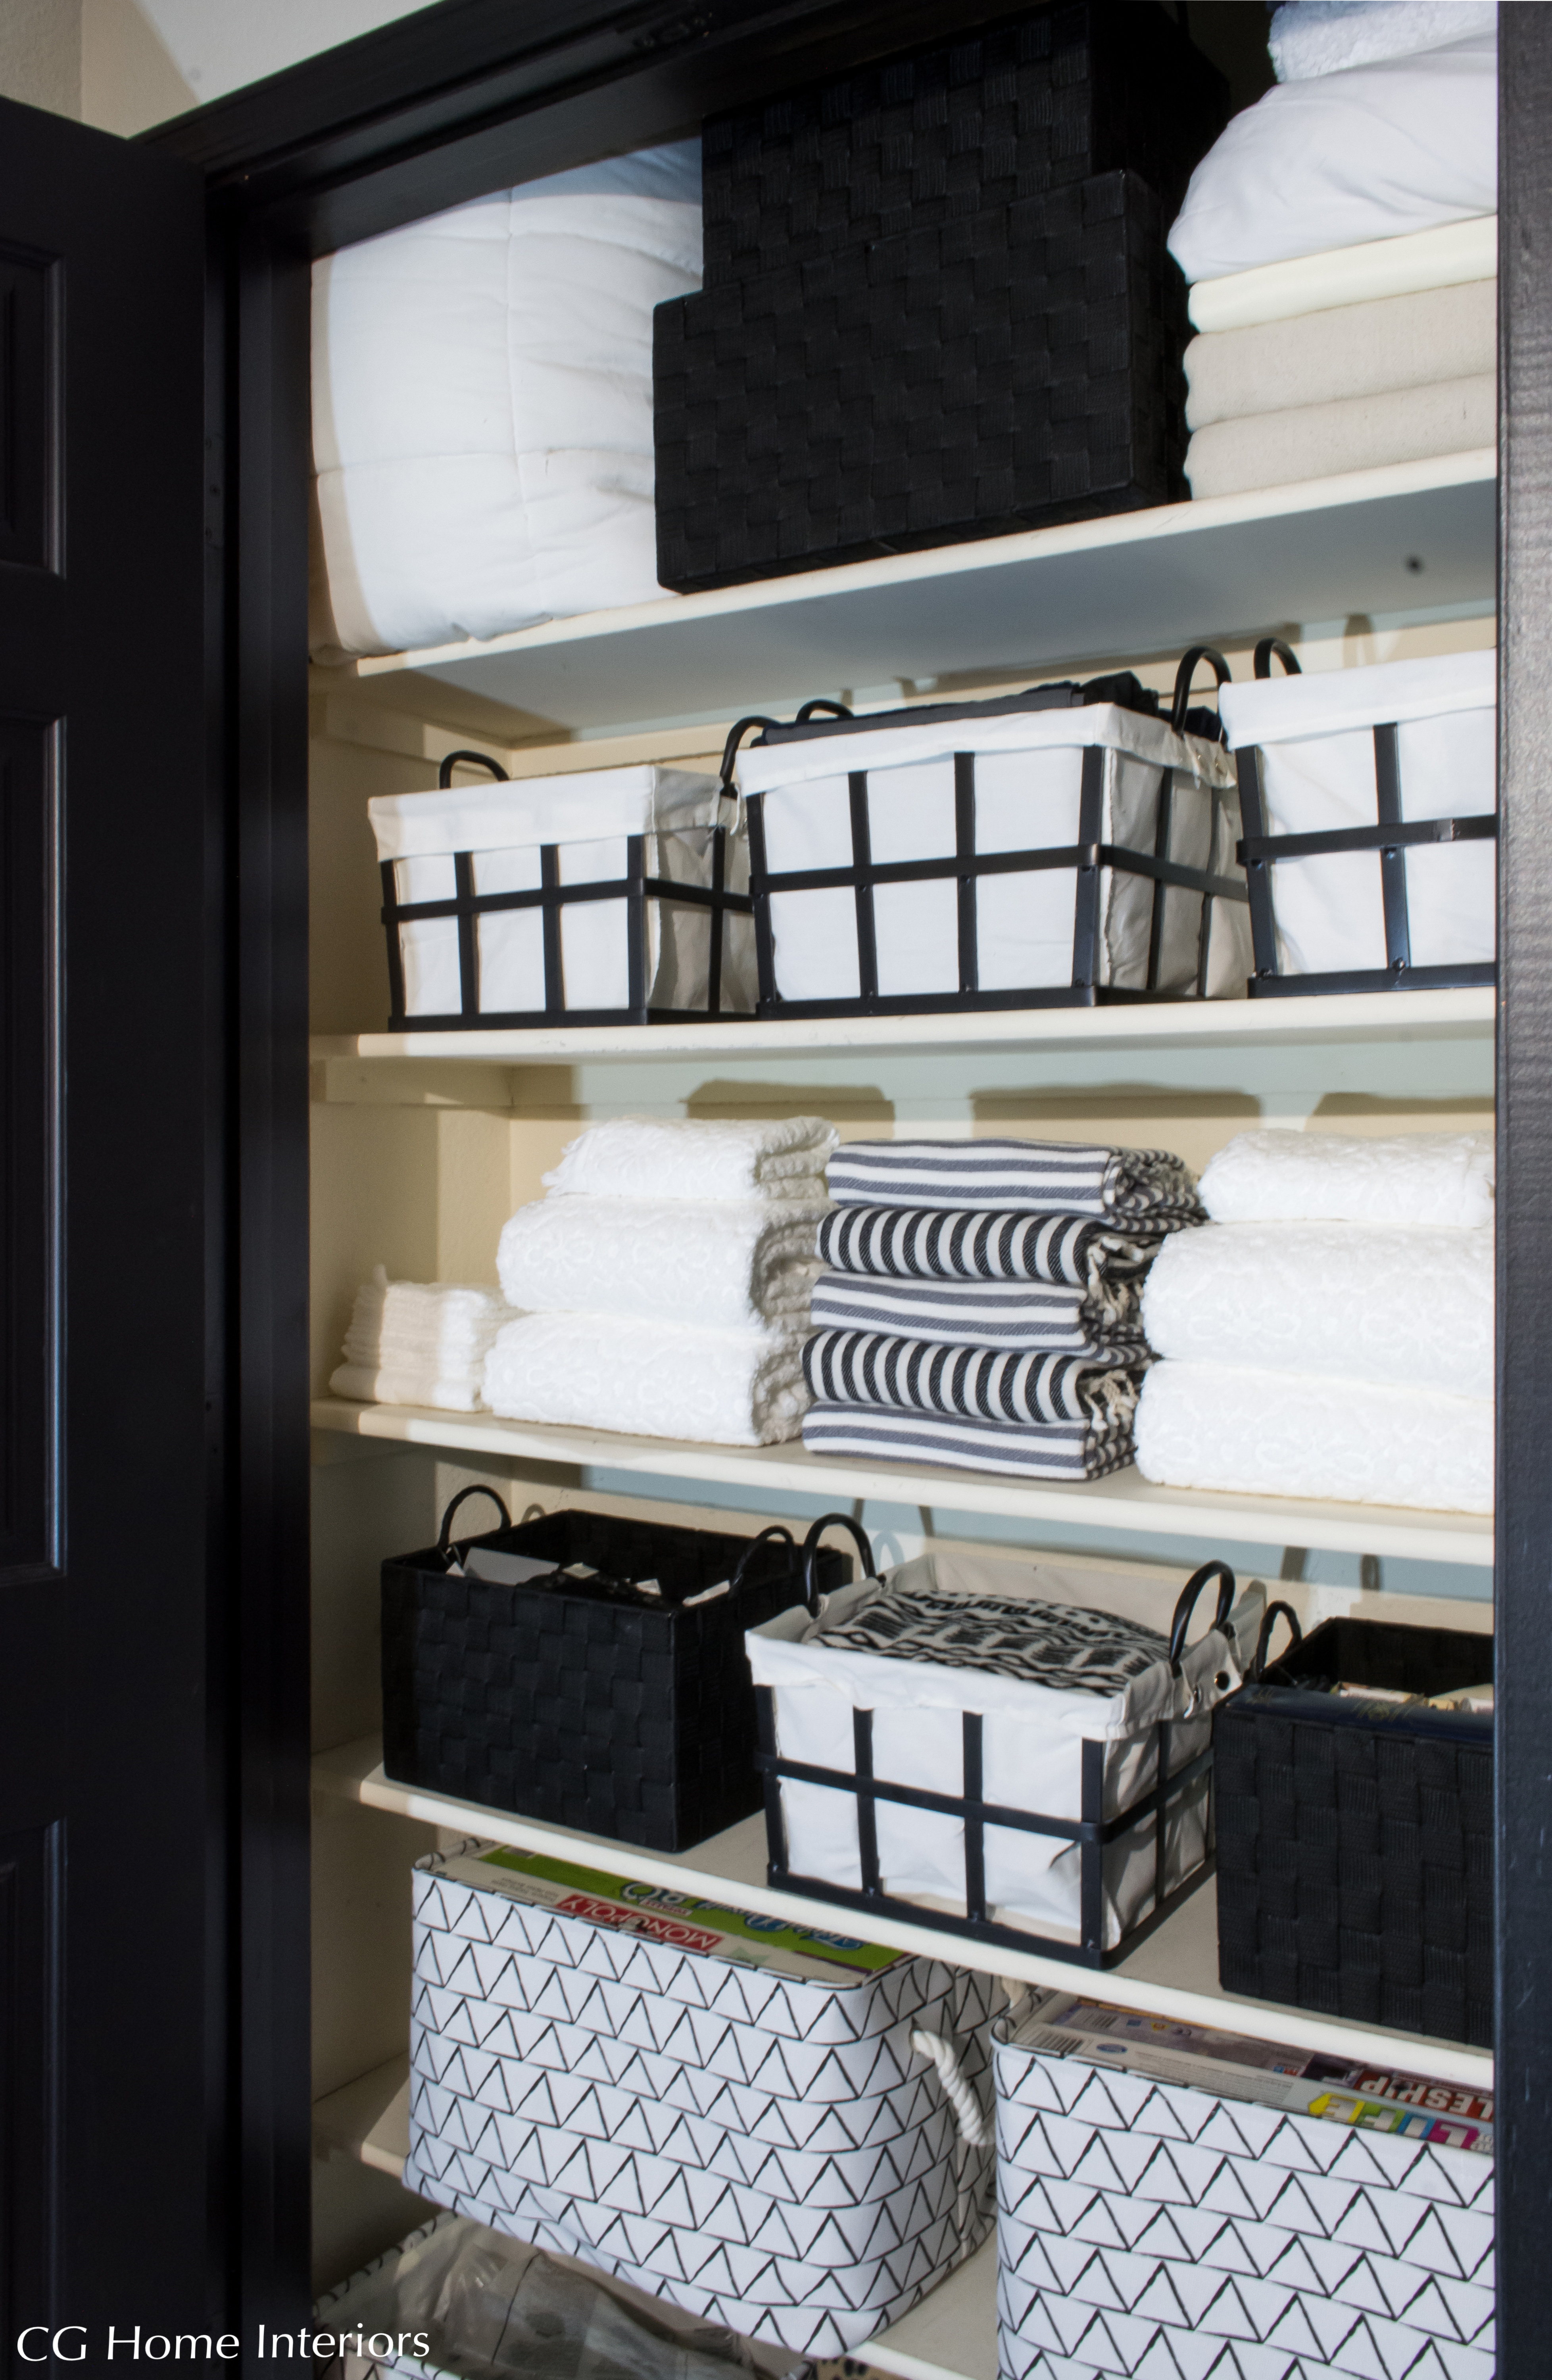 How to Organize, style and declutter your linen closet